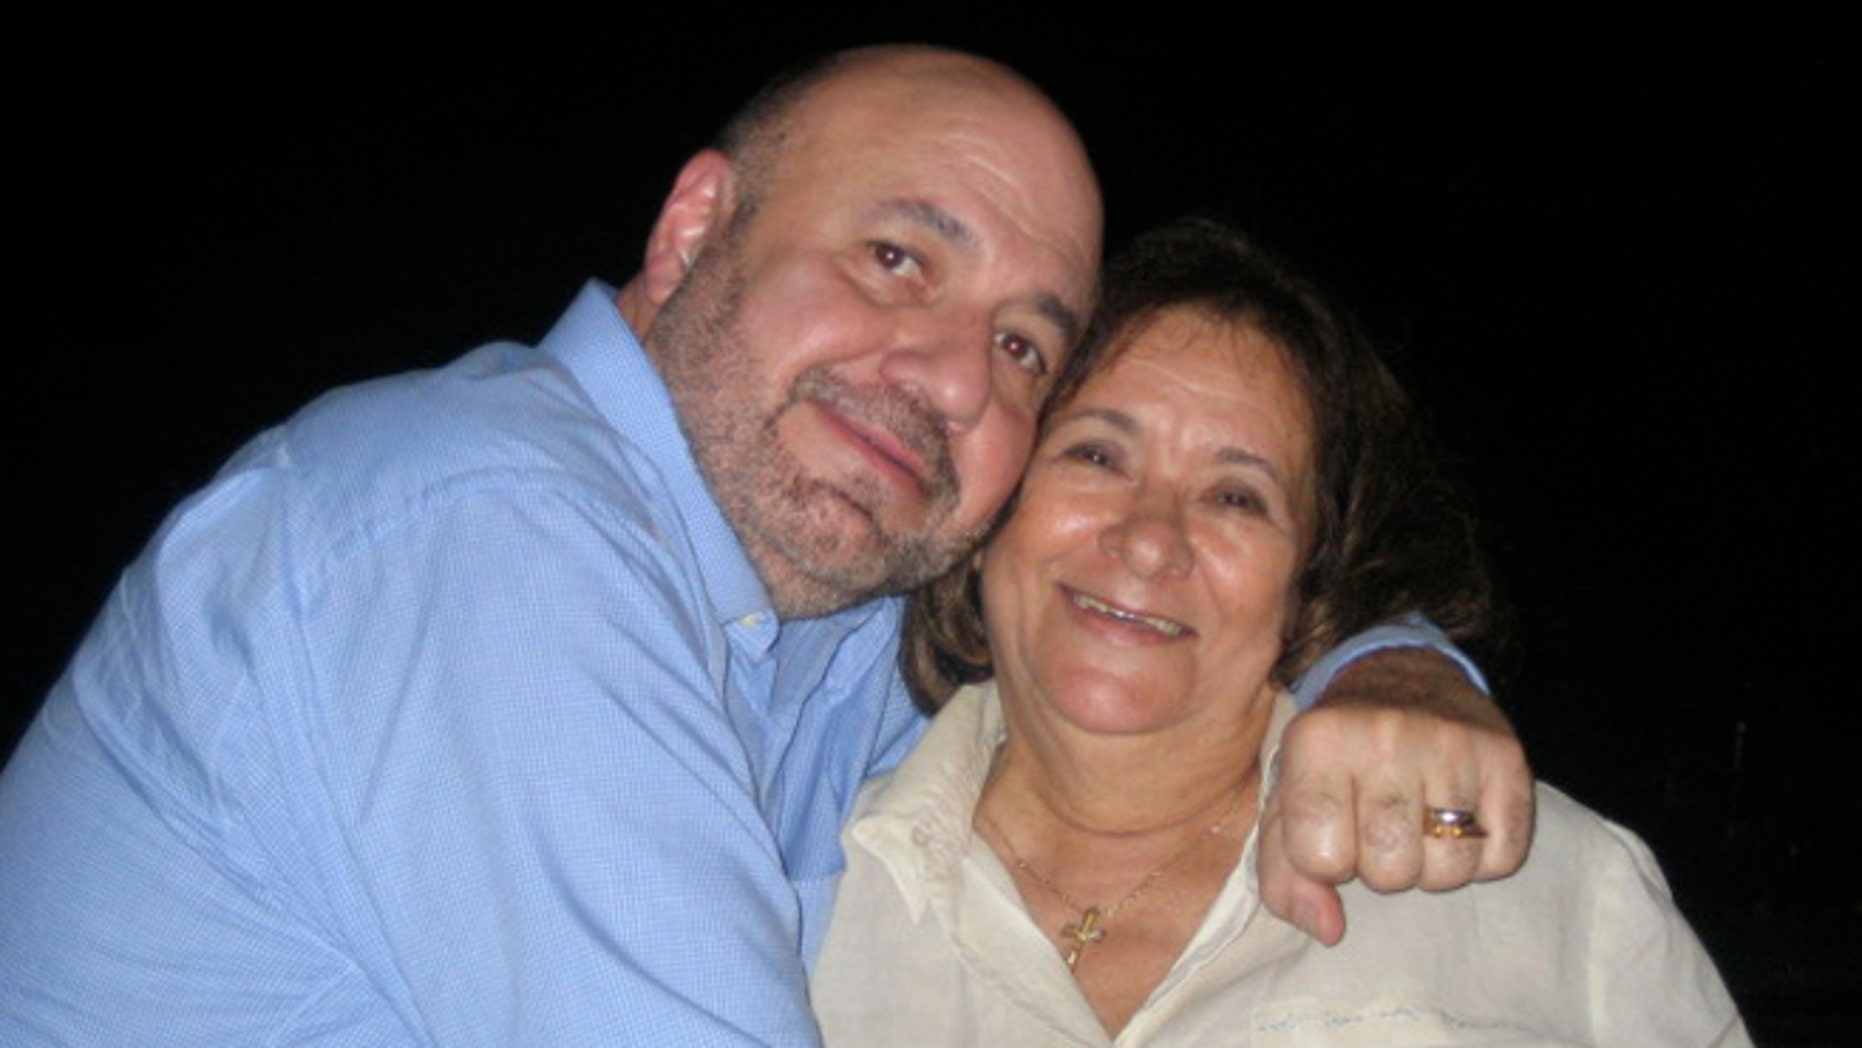 Dr. Manny poses with his mother, Elisa Alvarez.